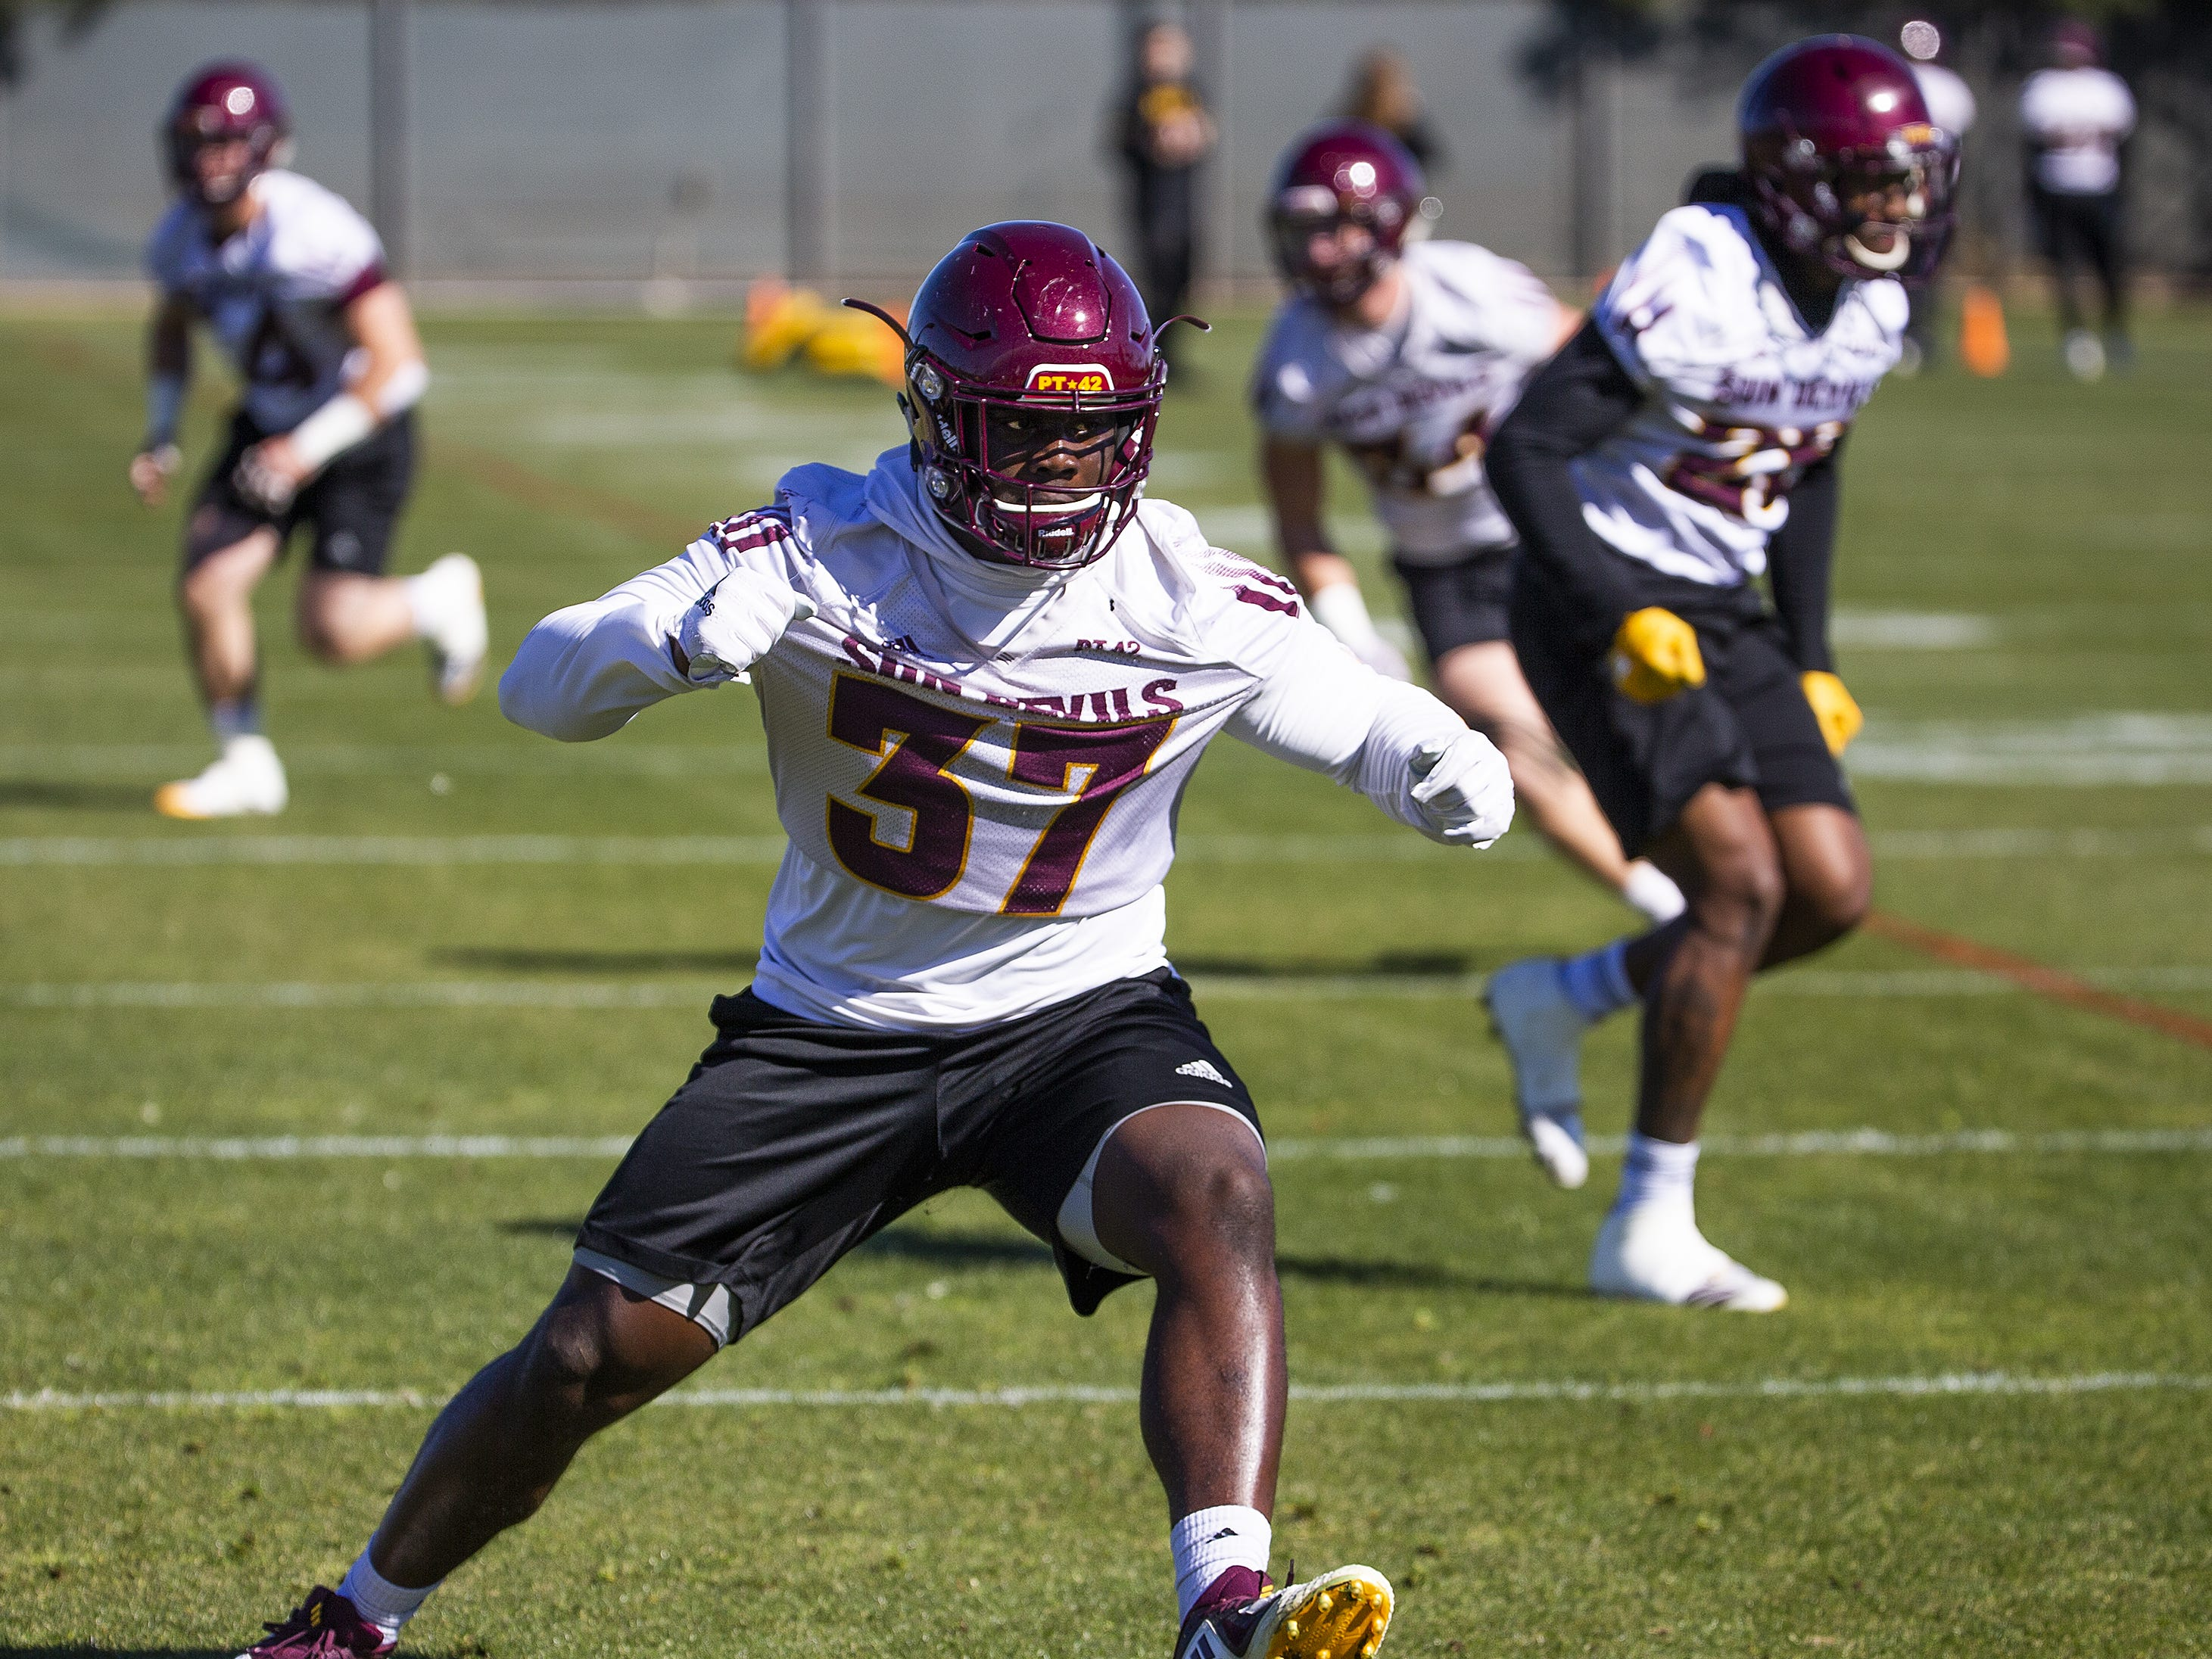 The Arizona State University football team practiced in Tempe, Tuesday, February 26, 2019.   Linebacker Darian Butler runs drills.